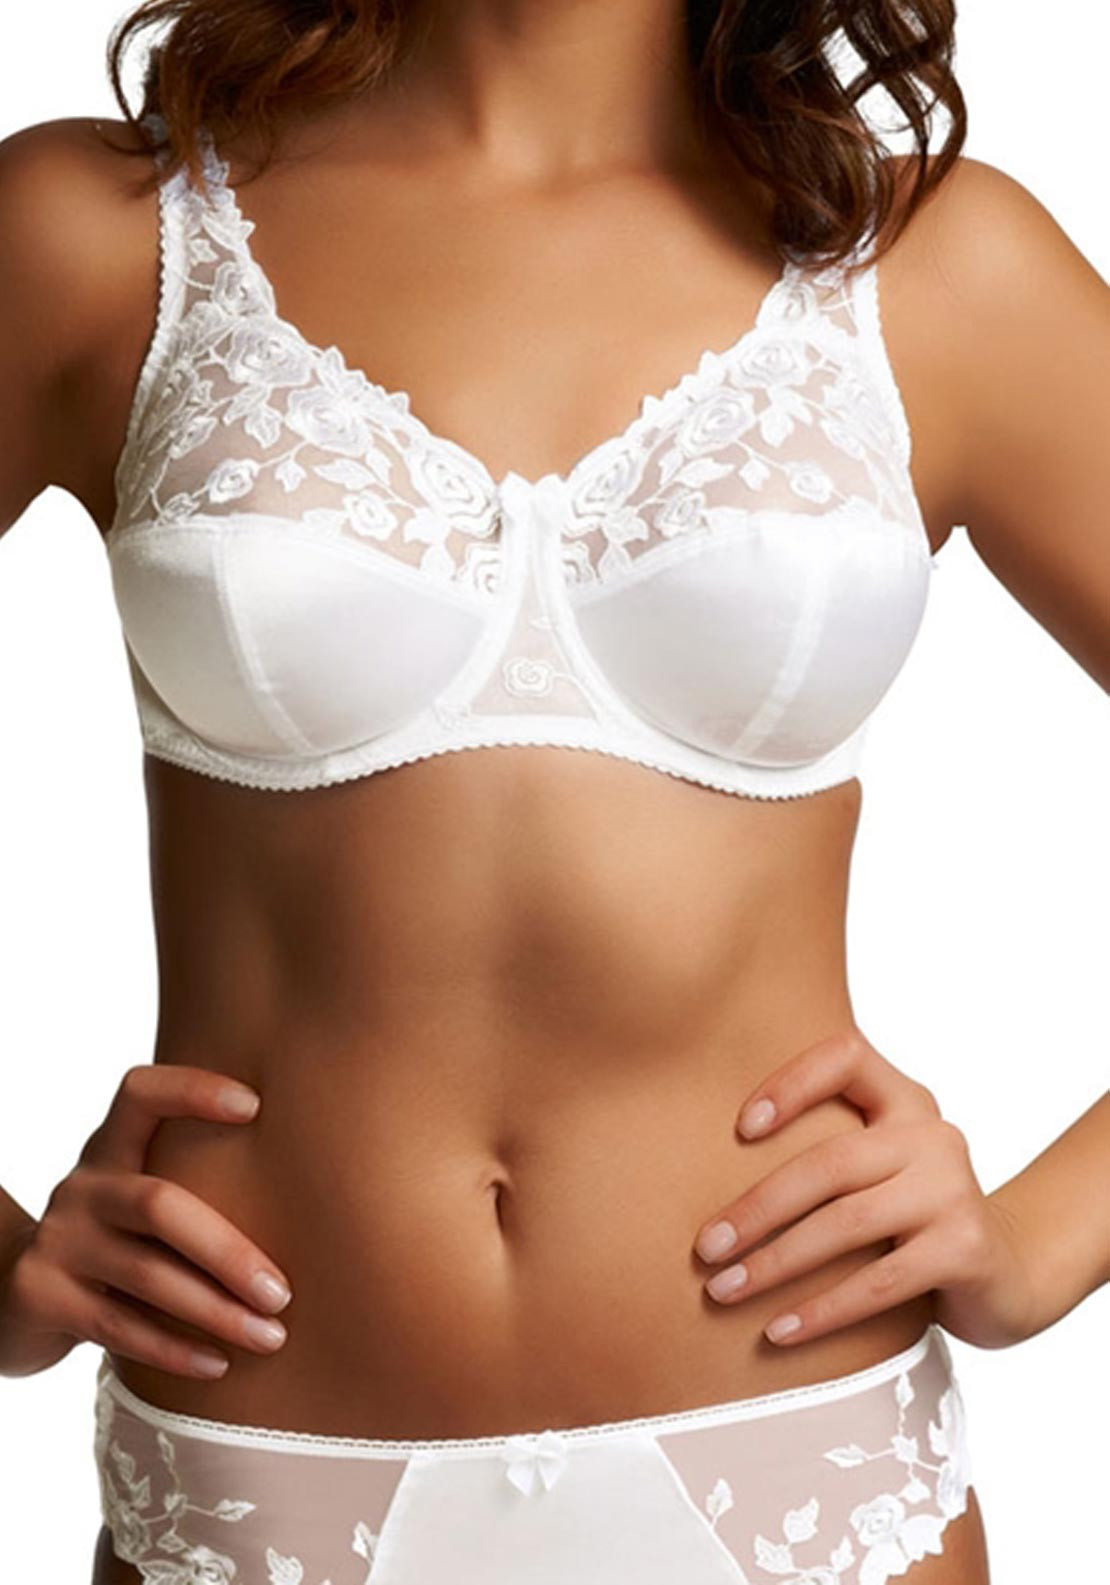 Fantasie Belle Full Cup Bra, White